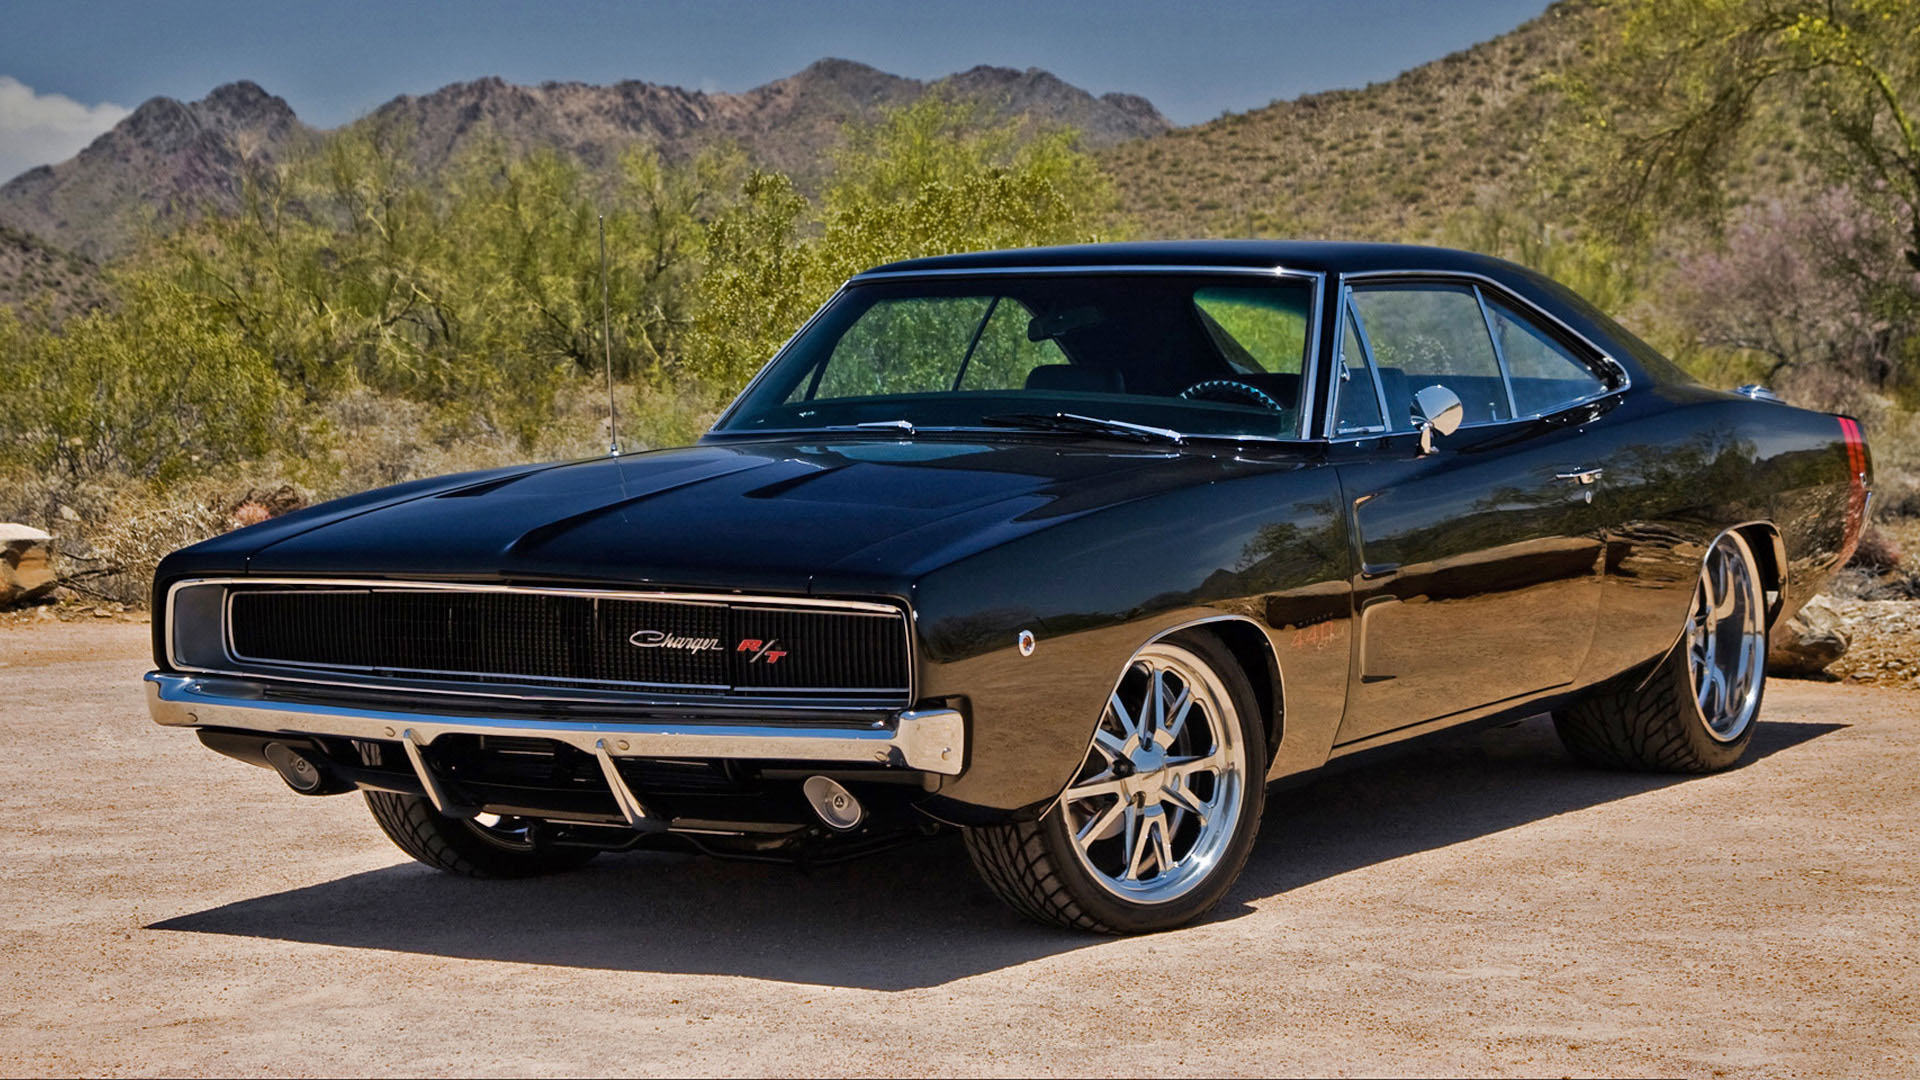 charger-wallhud-com-%C2%BB-Dodge-Charger-HD-wallhud-wallpaper-wpc9003425